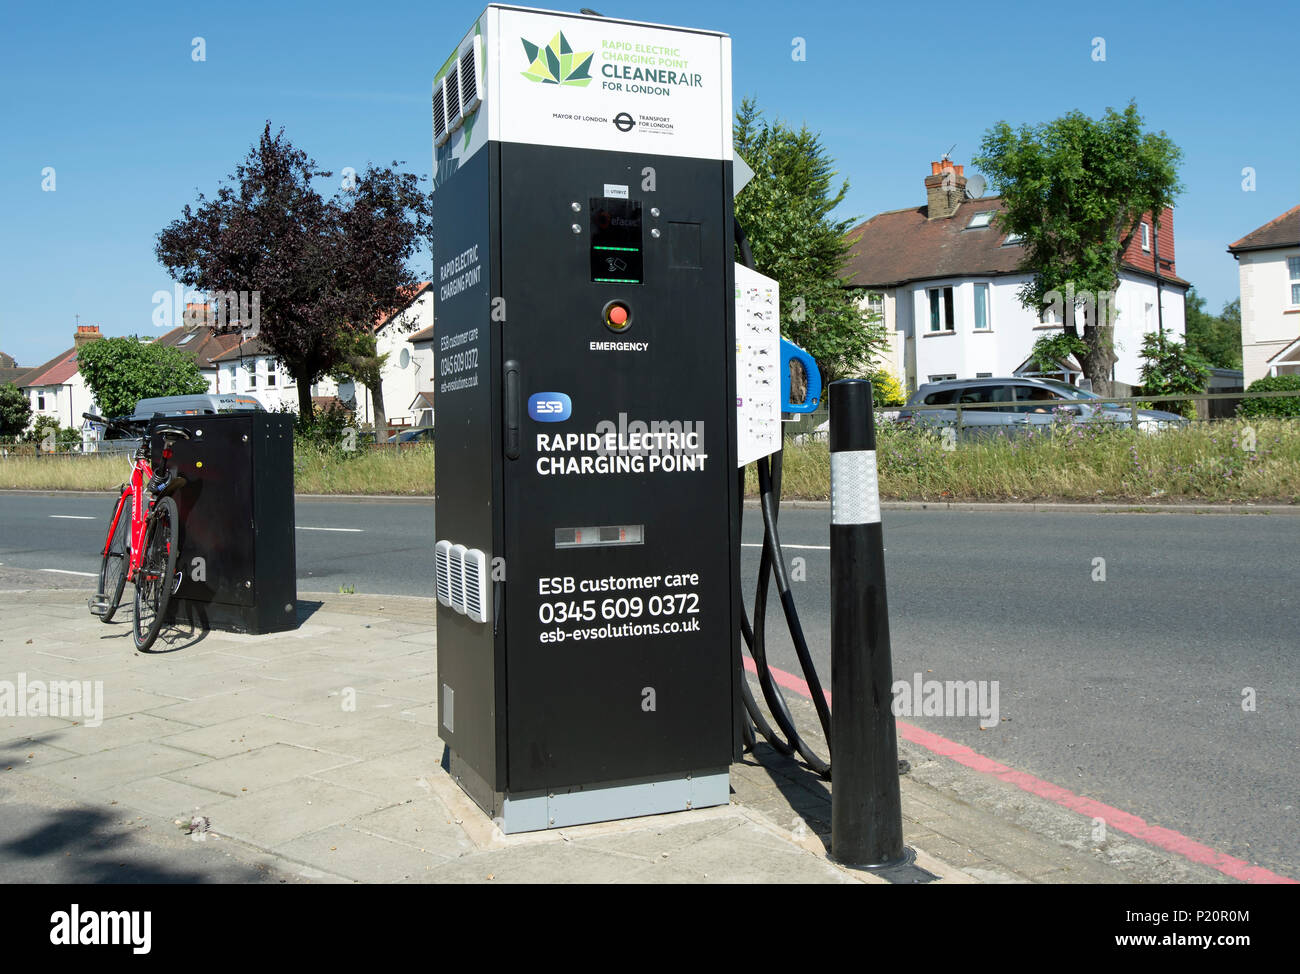 rapid electric car charging point in east sheen, london, england Stock Photo